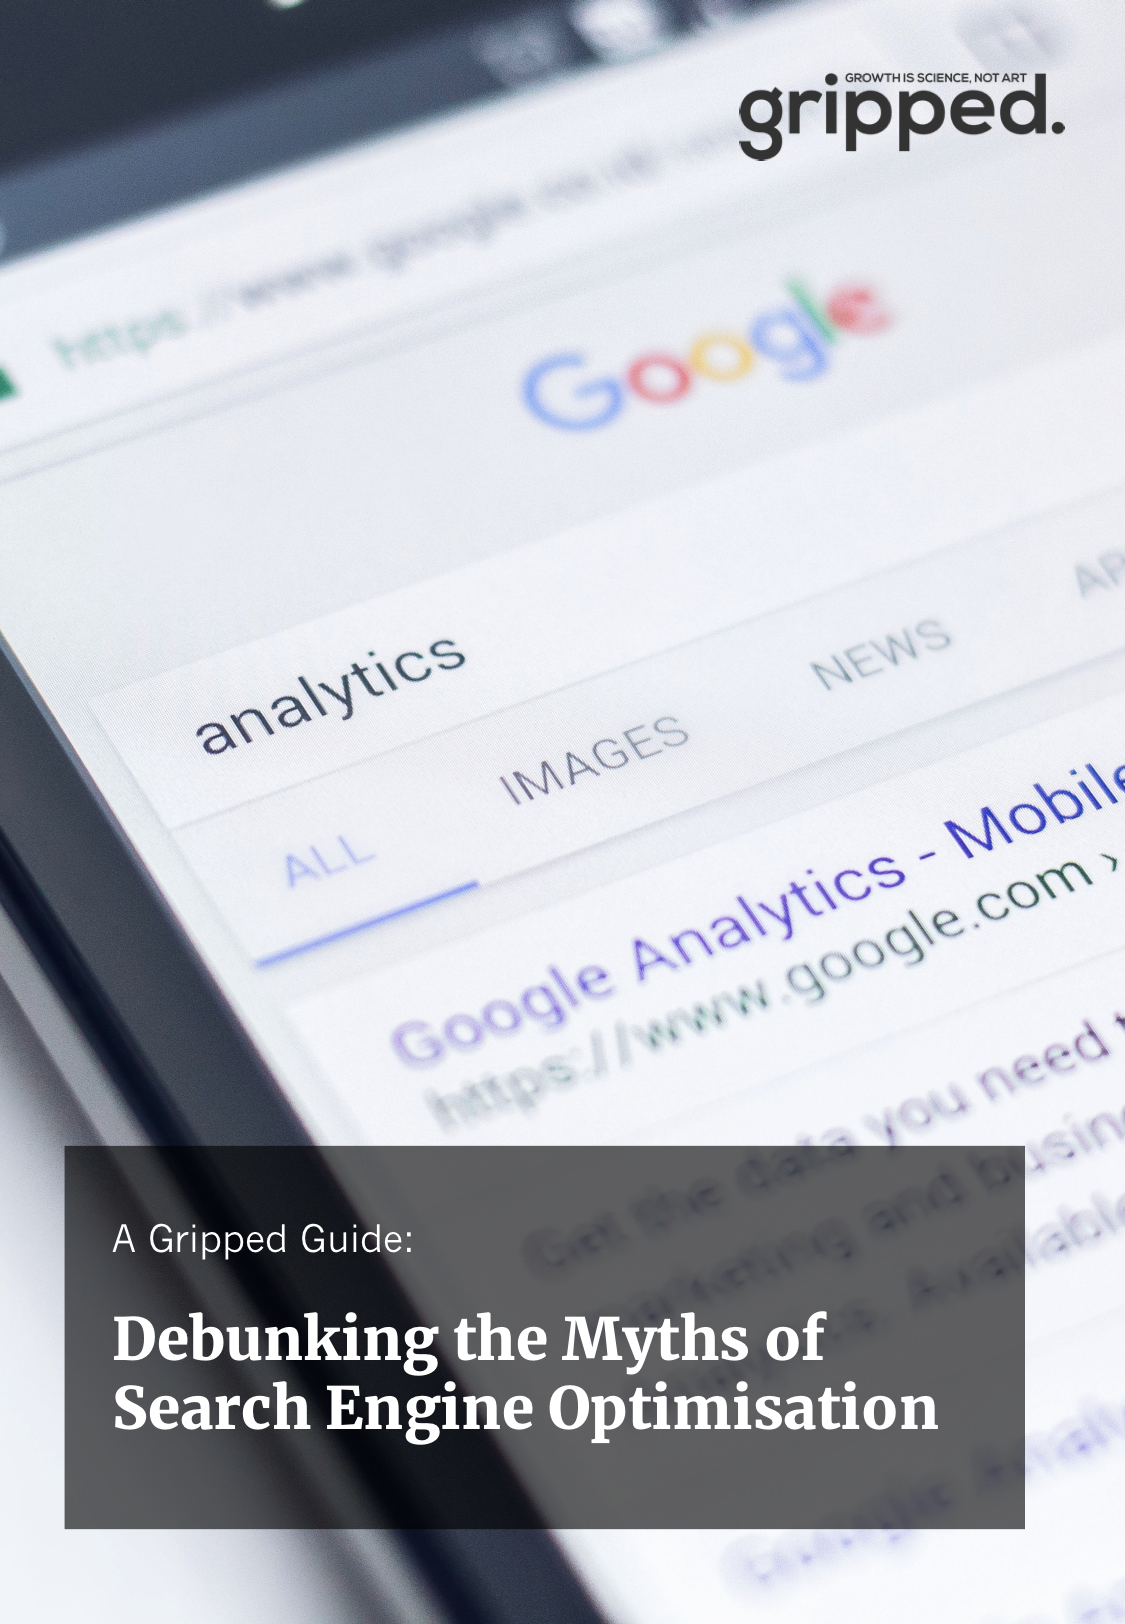 Debunking SEO Myths in 2018